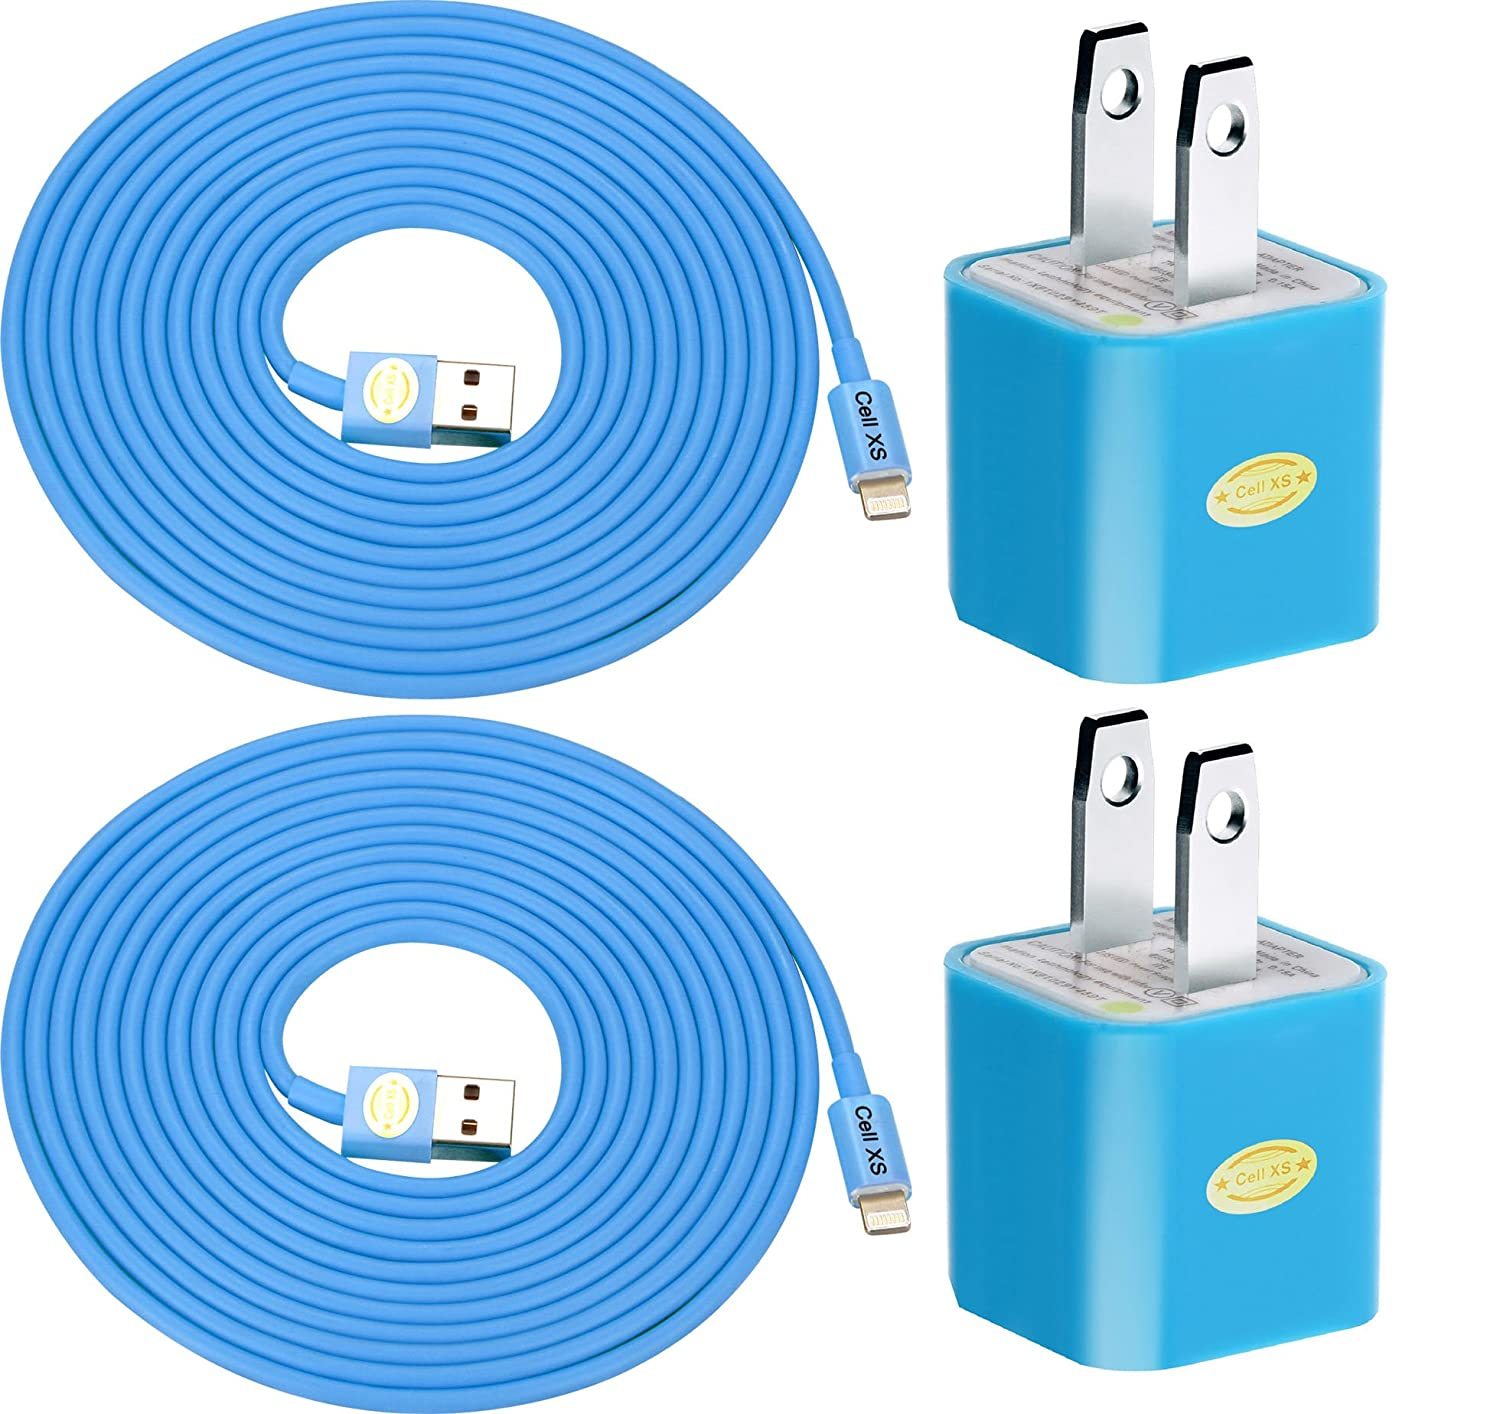 2pk 10ft Heavy Duty Lightning Cables with 2 Wall Chargers for iPhone 6S+/6S/6+/6/5/5C/5S